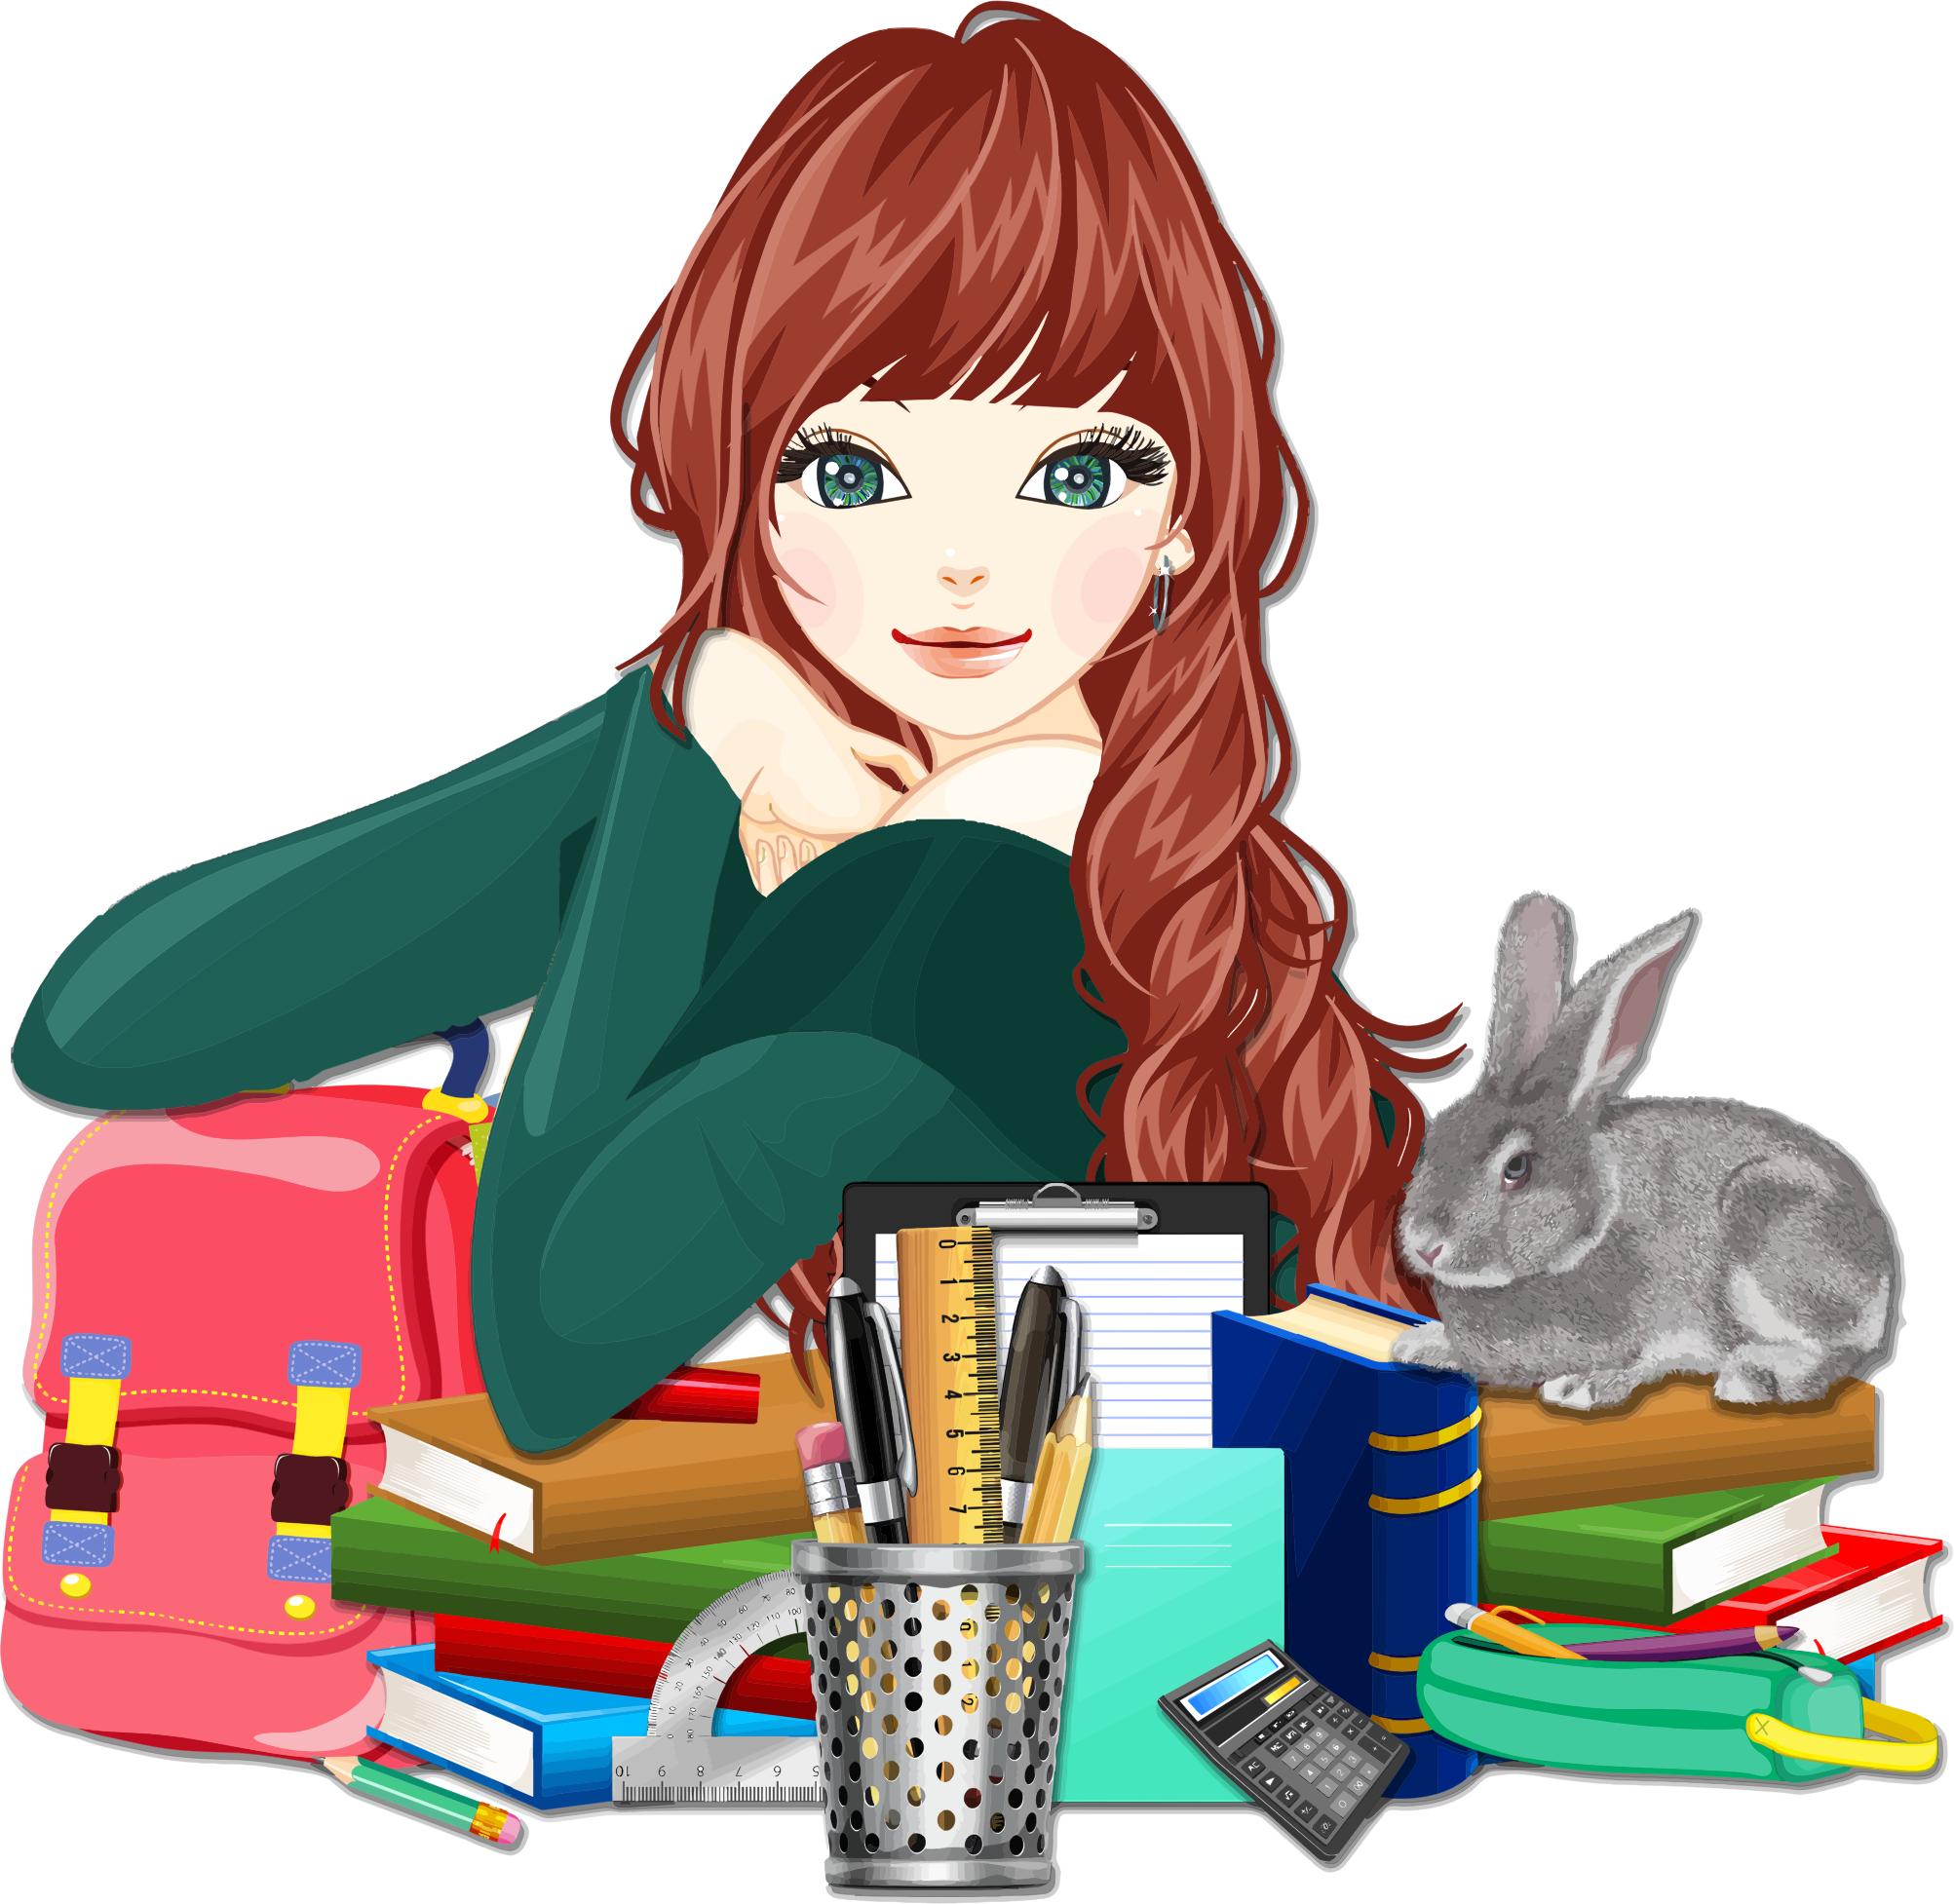 Girl going to school clipart image transparent stock Clipart - School Girl With Rabbit 2 image transparent stock